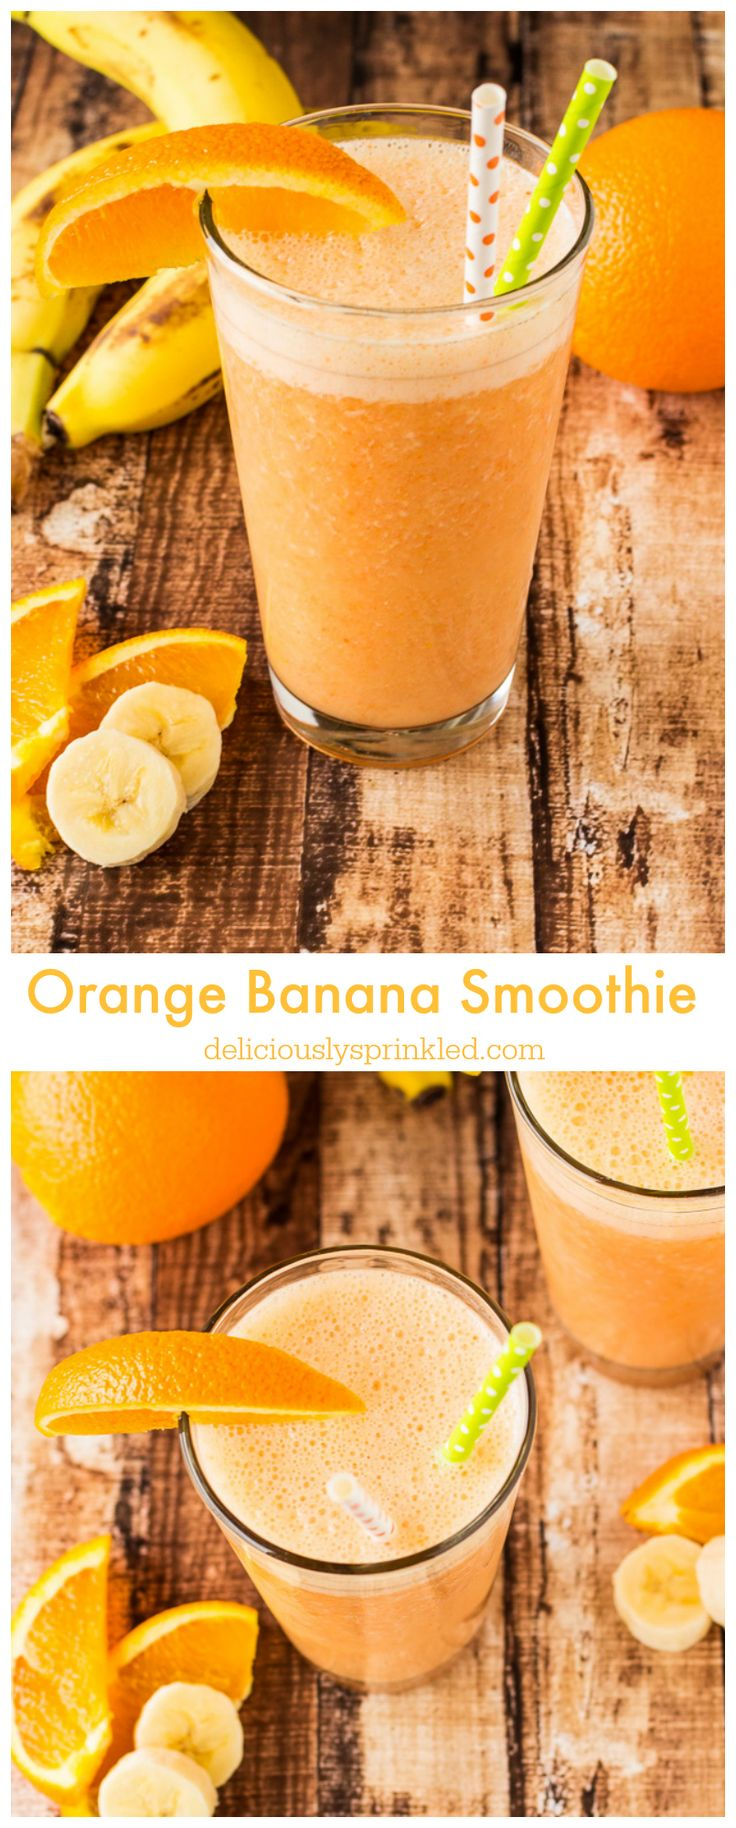 A delicious, healthy Orange Banana Smoothie. I make this smoothie all the time!